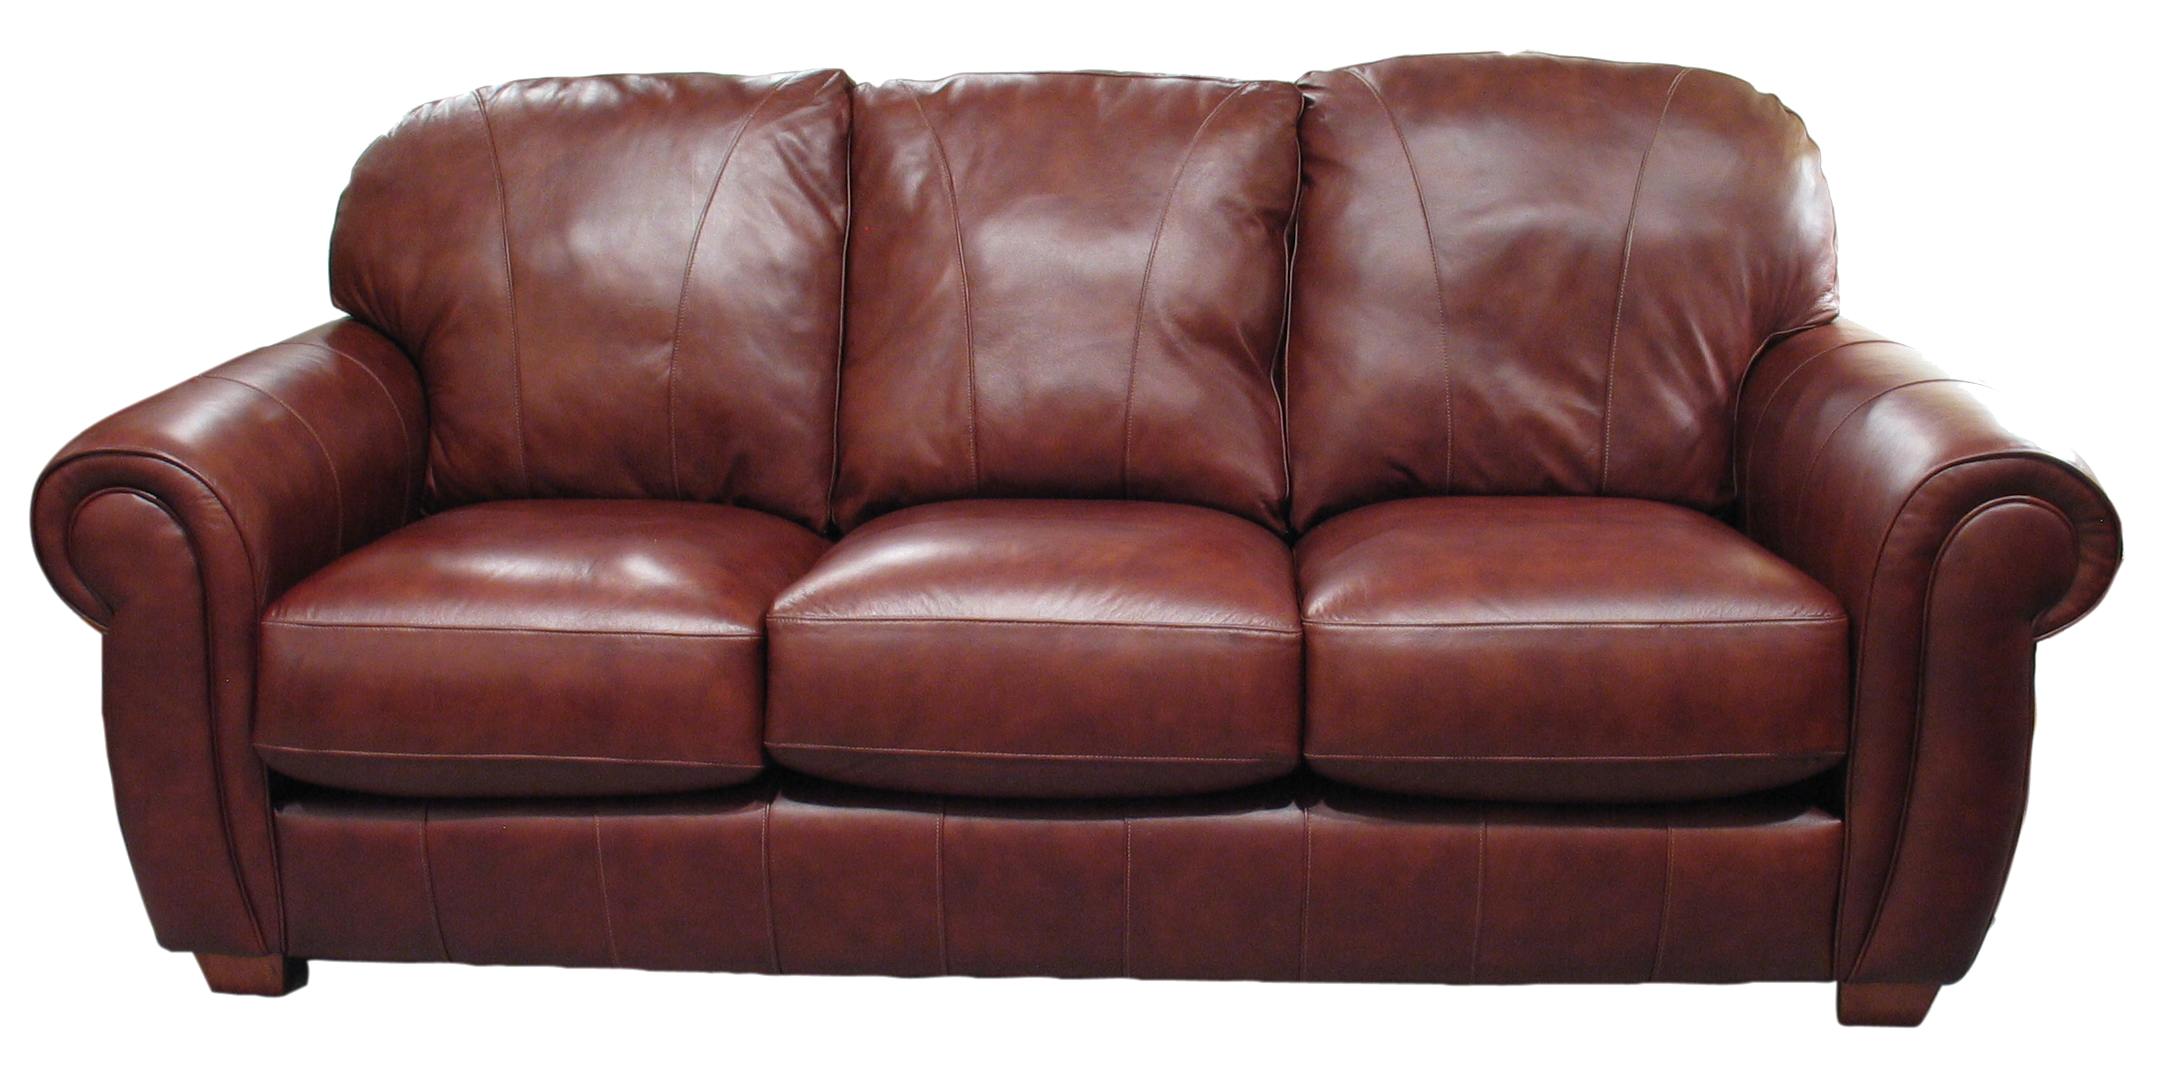 Sofa image purepng free. Couch png graphic royalty free library